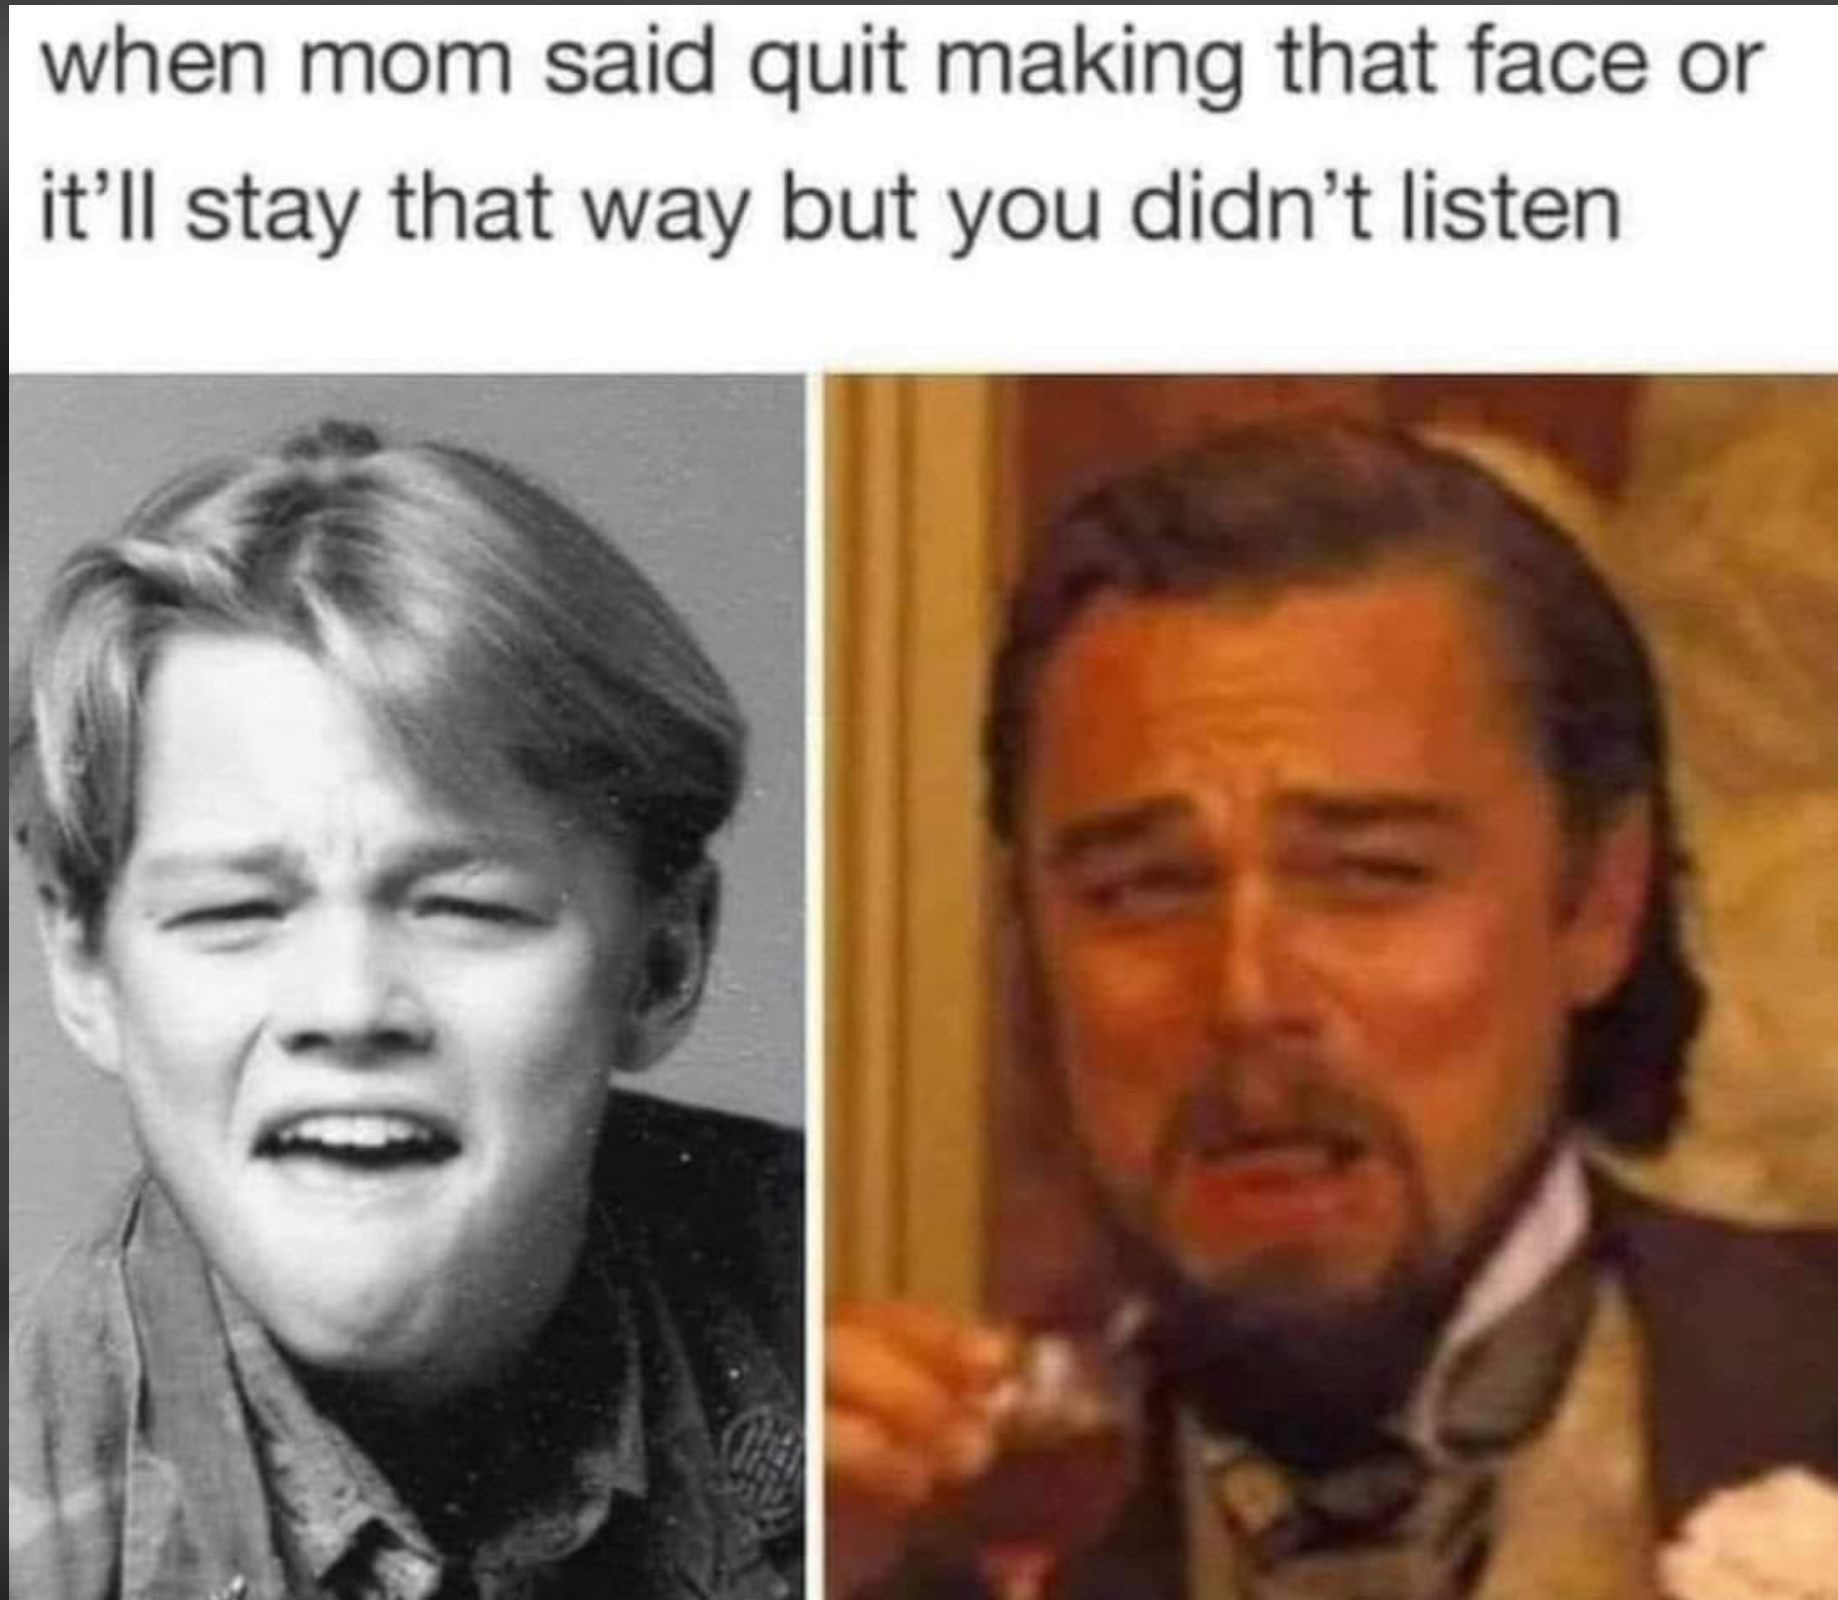 Quit Making That Face